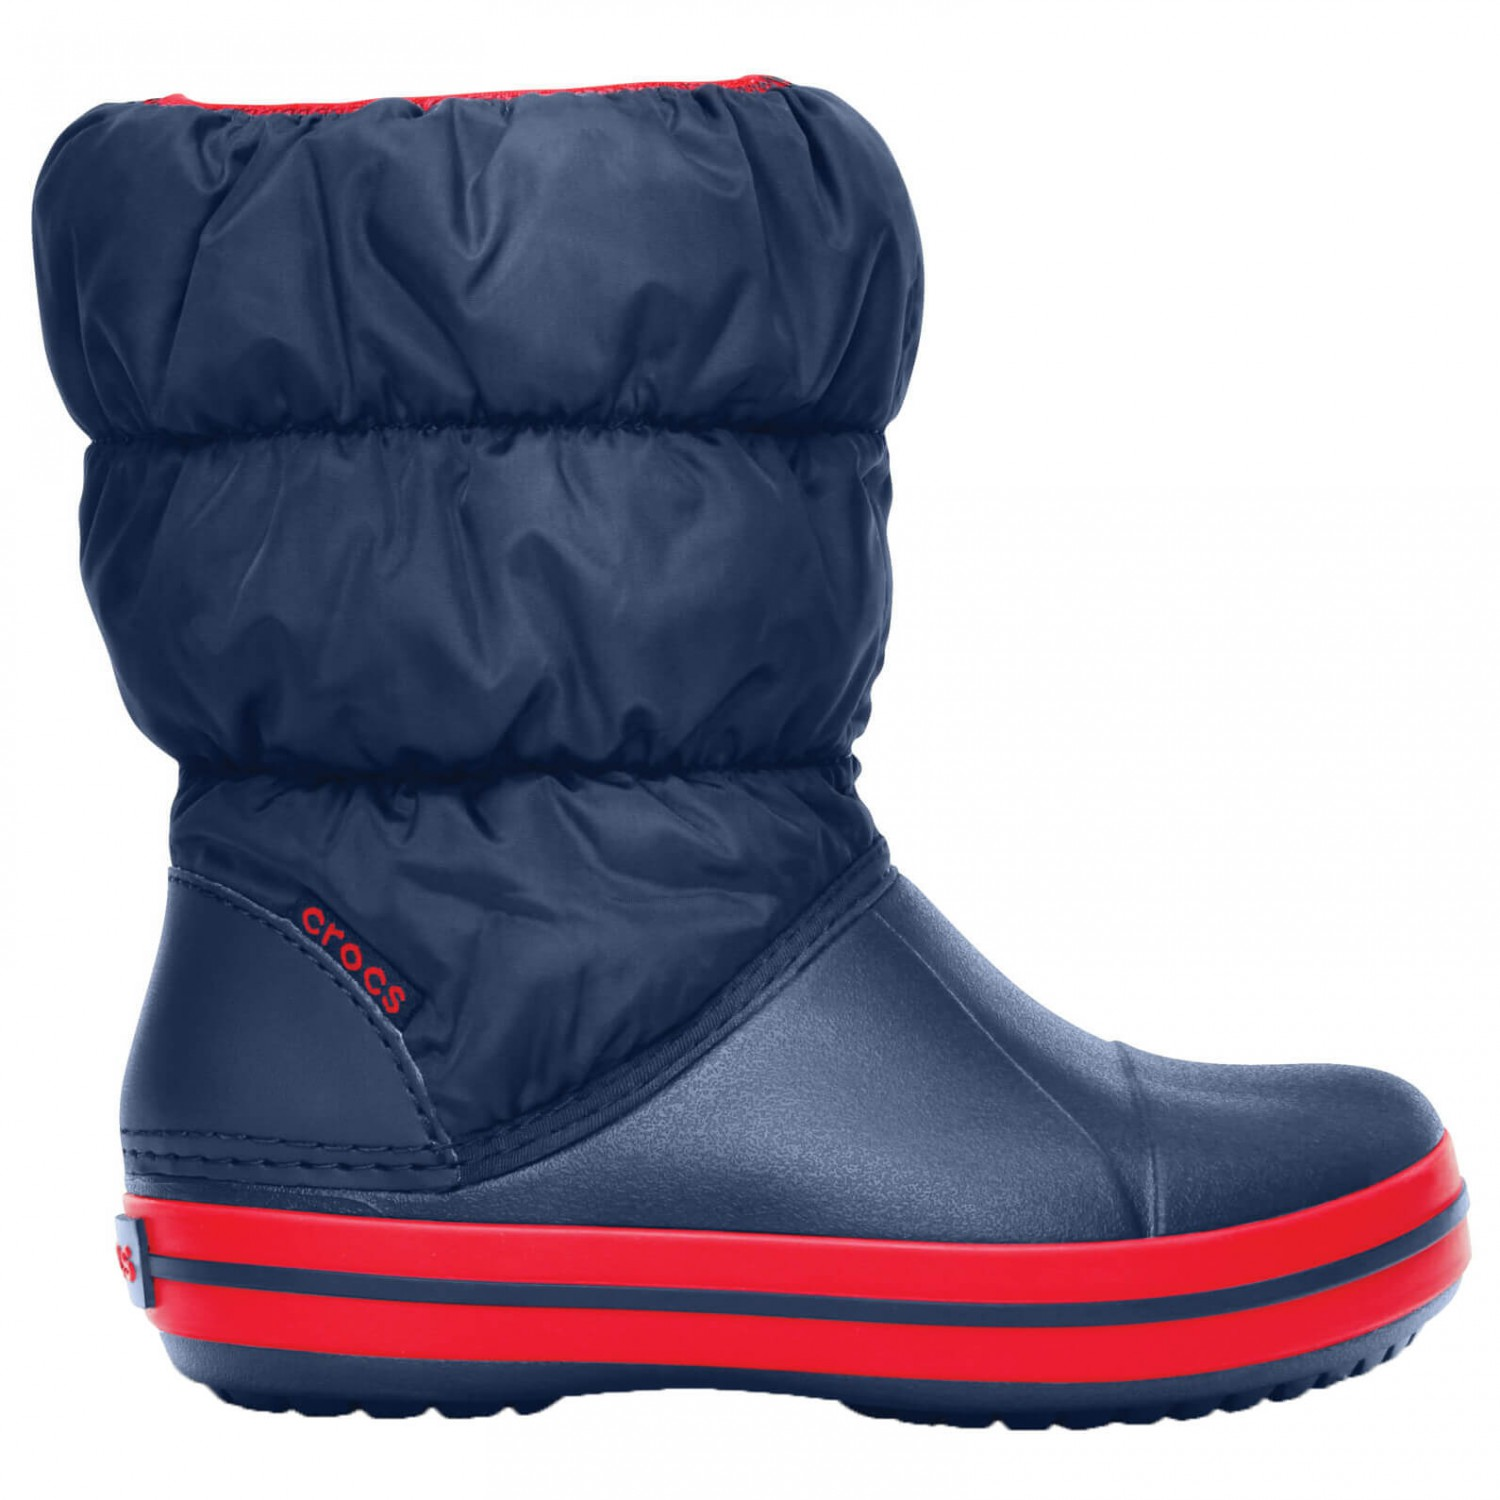 ab203bf9a120e ... Crocs - Winter Puff Boot Kids - Winter boots ...